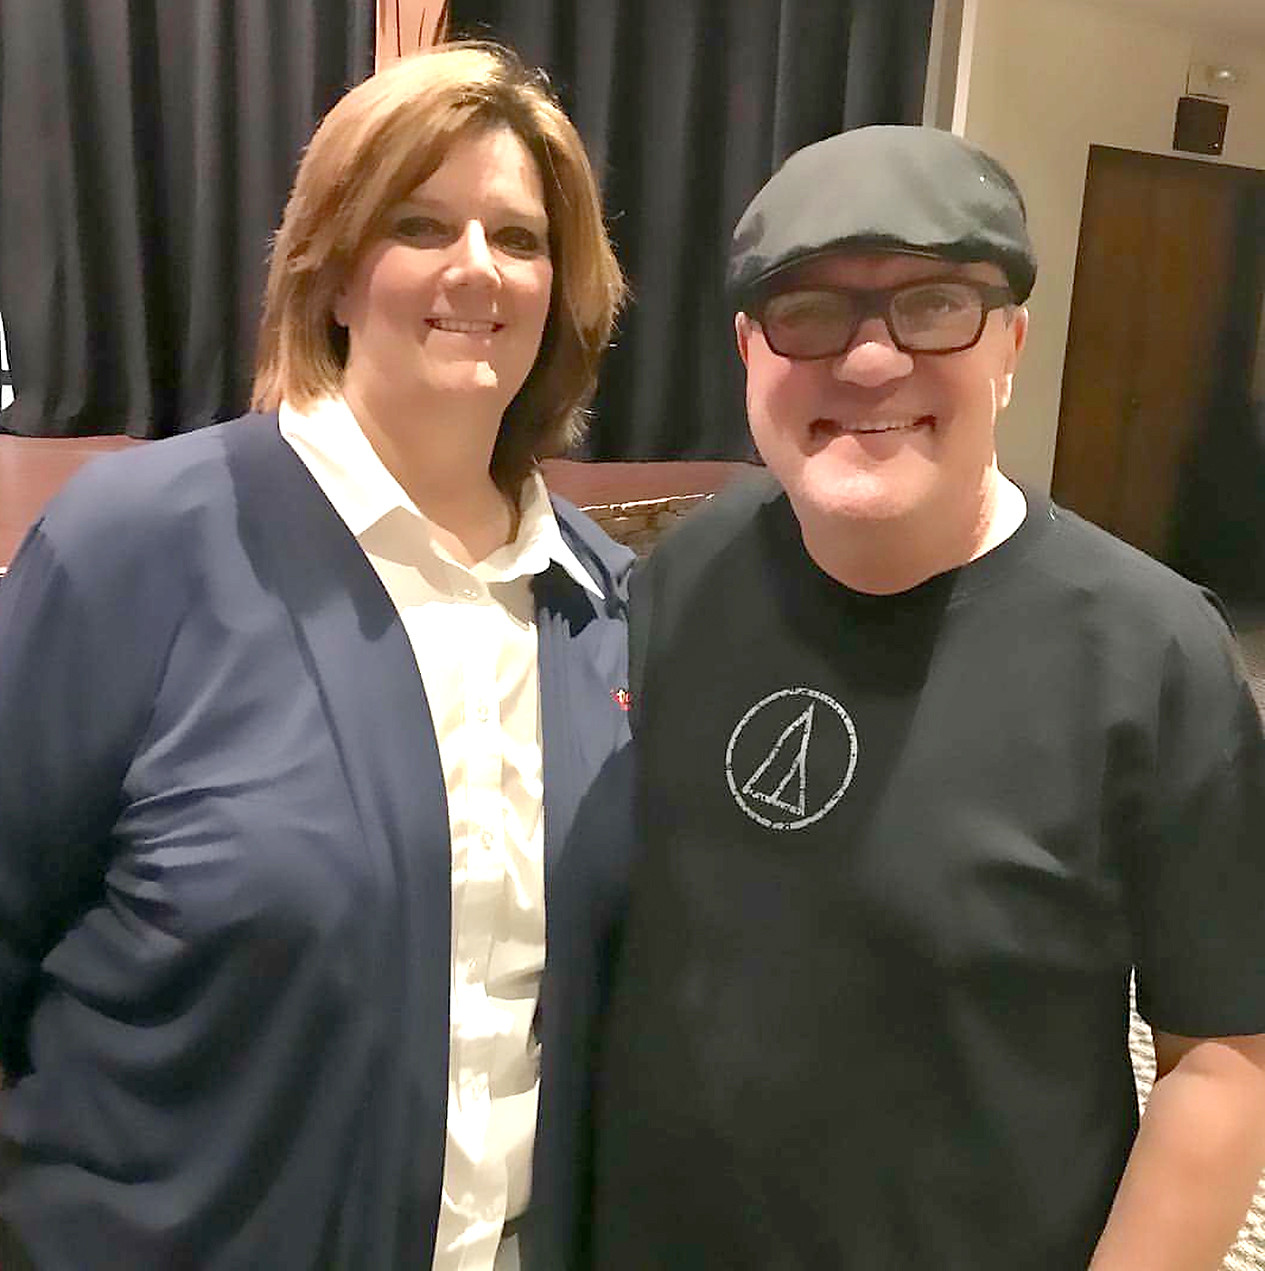 Christian comedian and musician Mark Lowry shares a laugh with Sgt. Ruthie Forgey during his recent visit to benefit the local Salvation Army.